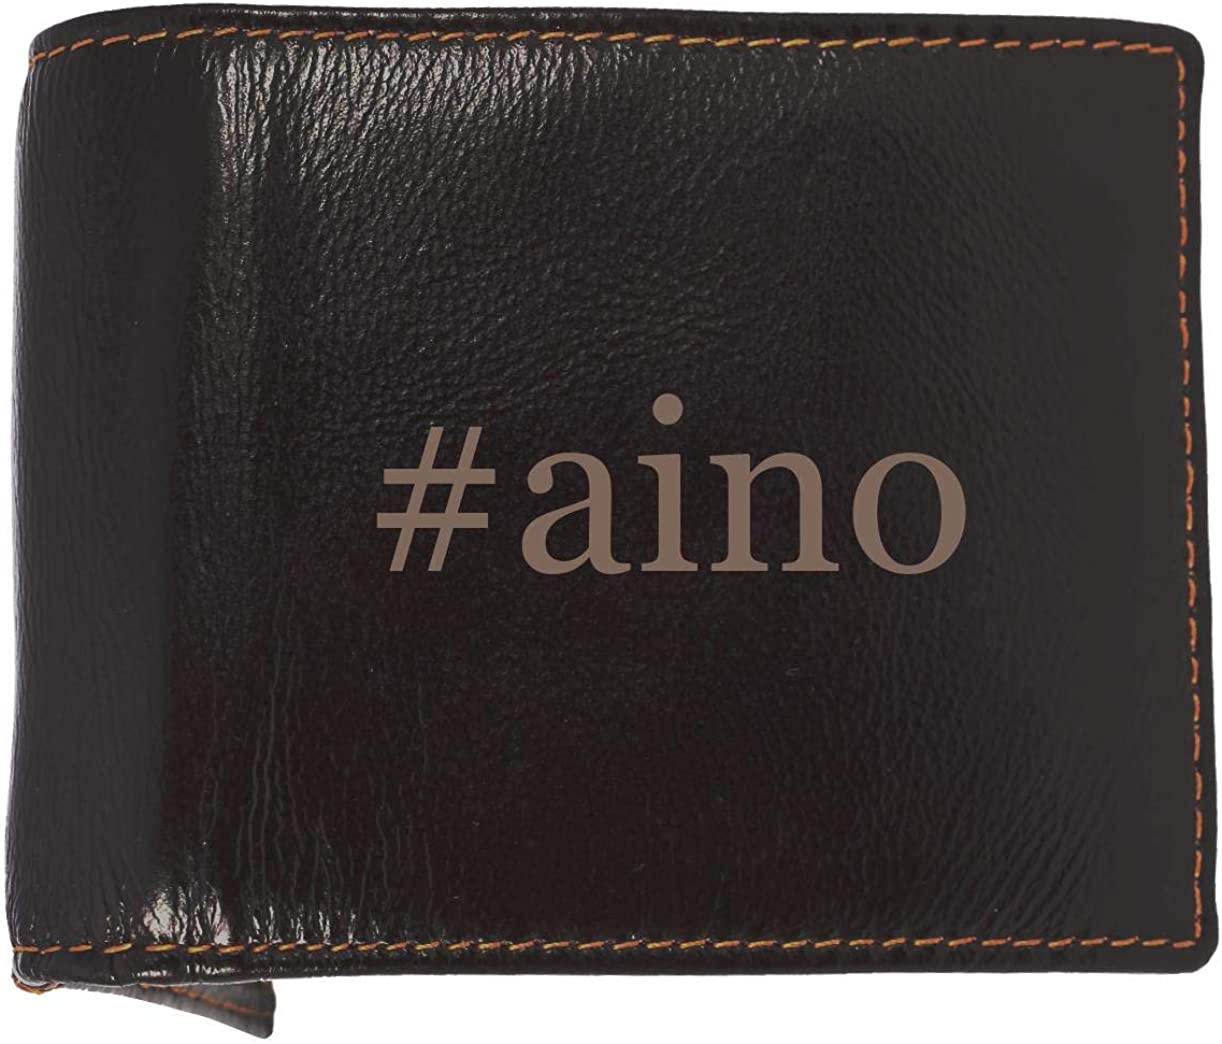 #aino - Soft Hashtag Cowhide Genuine Engraved Bifold Leather Wallet 61xNOGIVHvL